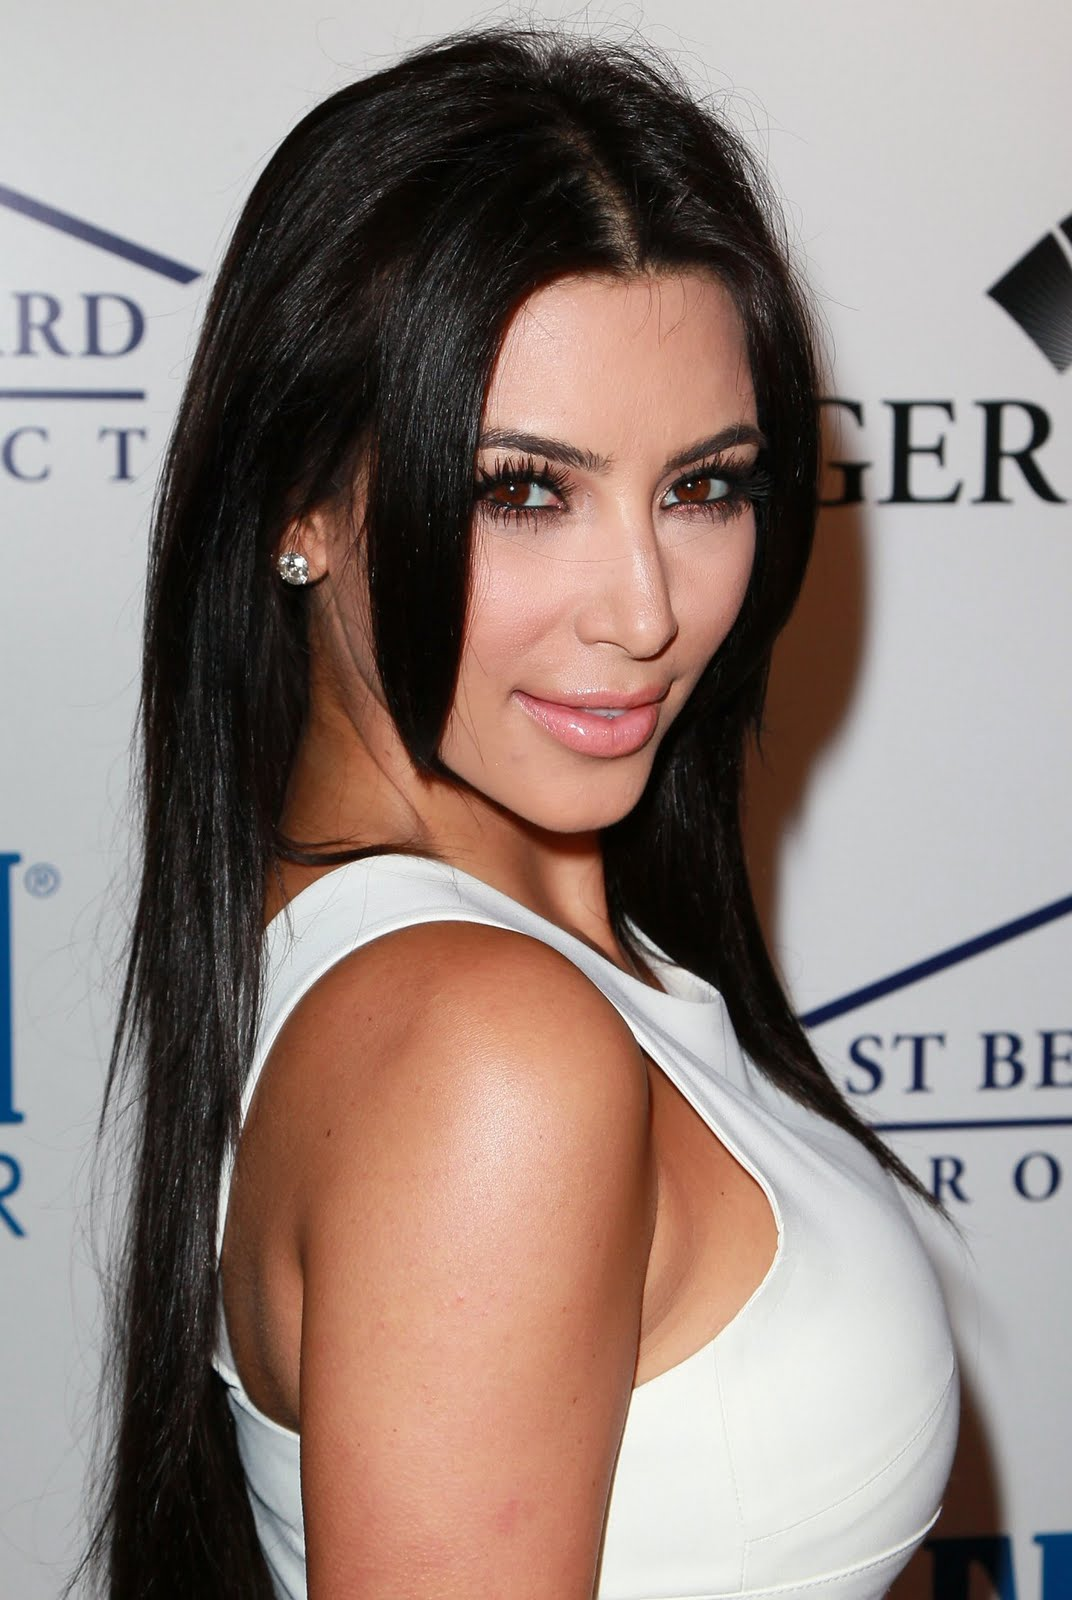 http://3.bp.blogspot.com/-qxyvItKmoWw/TgVfIdZcHZI/AAAAAAAALCo/kox_JrL6U94/s1600/latest-kim-kardashian-photo-2011-sexy-tight-white-dress+%25282%2529.jpg